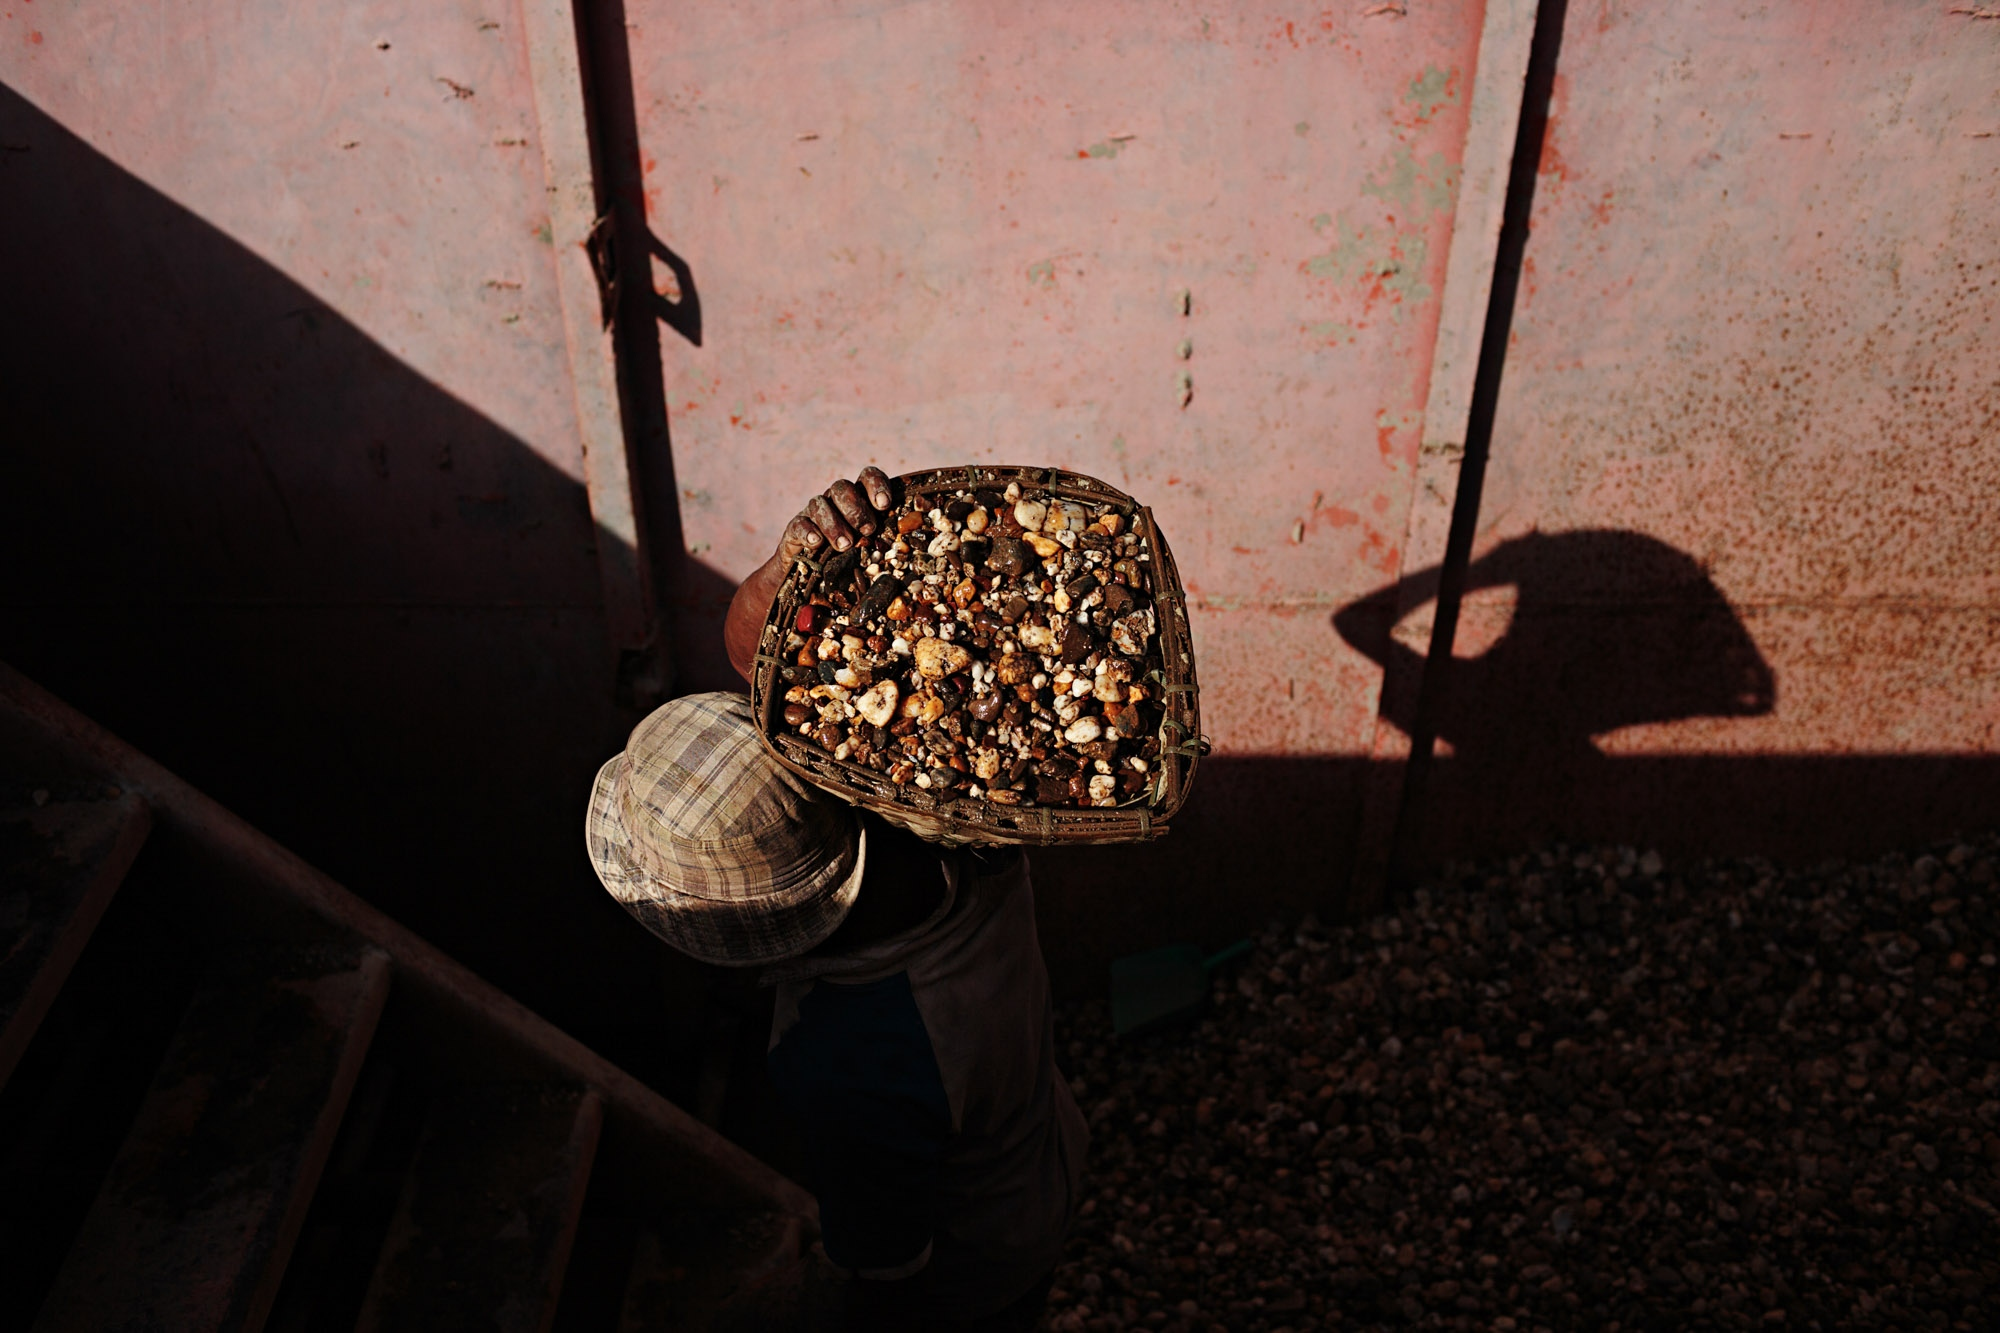 A worker carries a basket of gravel up from the bottom of a dredging boat.